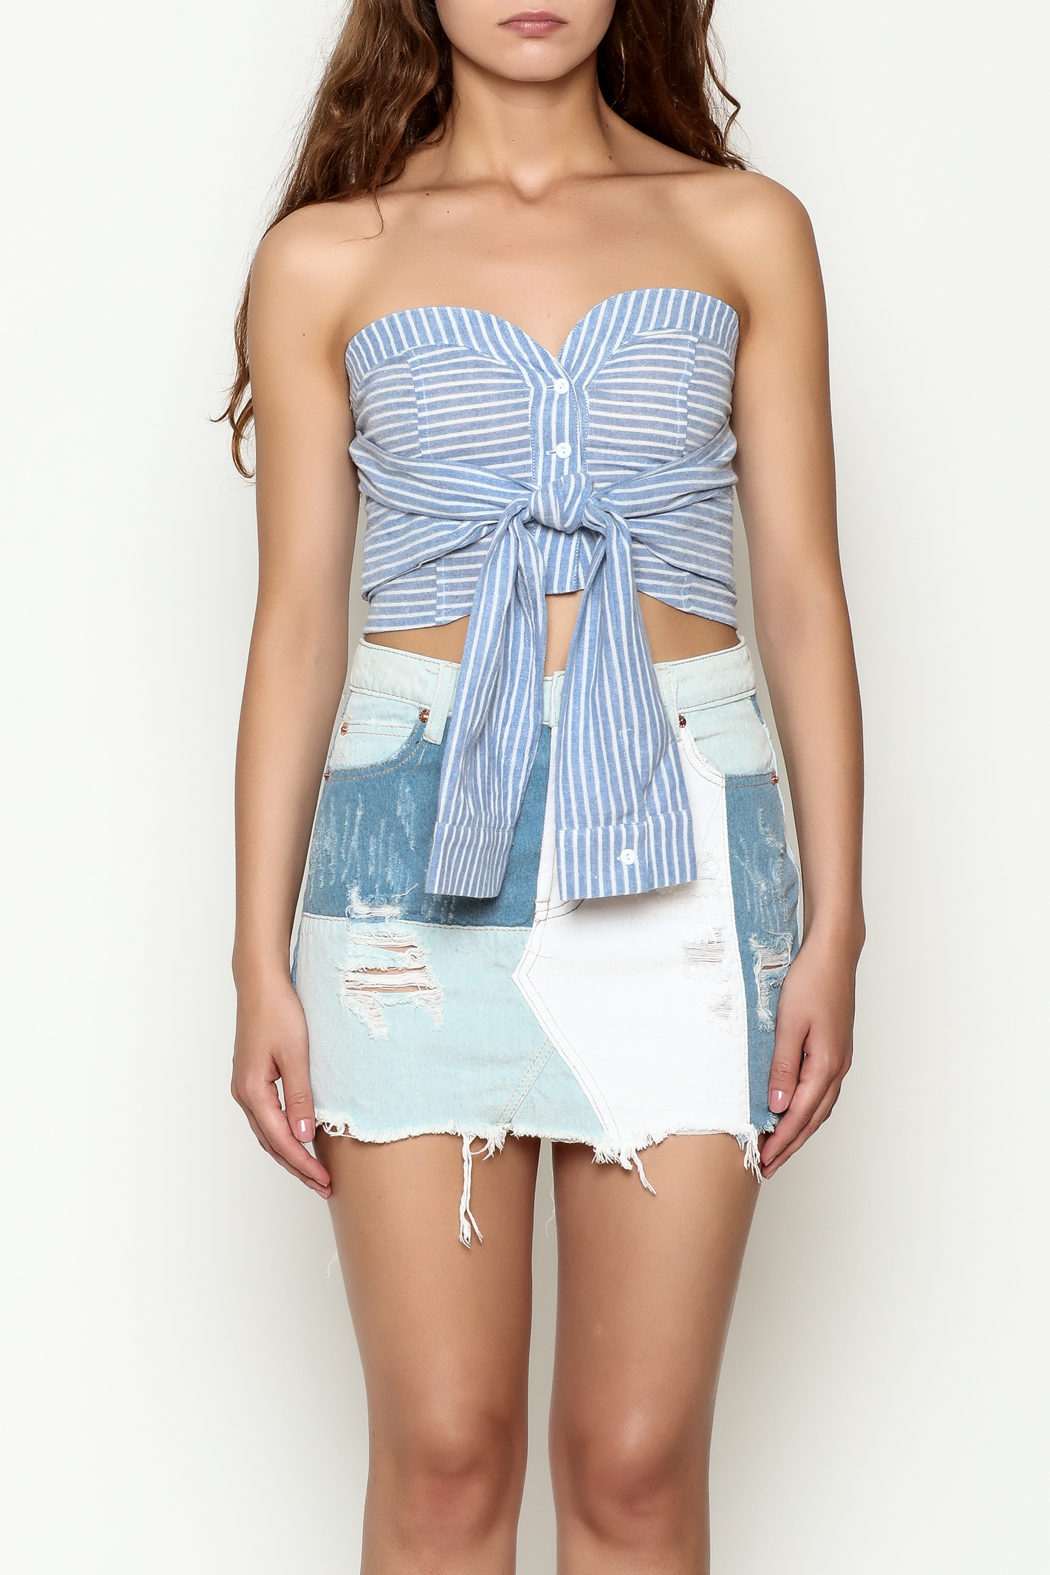 etophe studios Striped Tie Top - Front Full Image